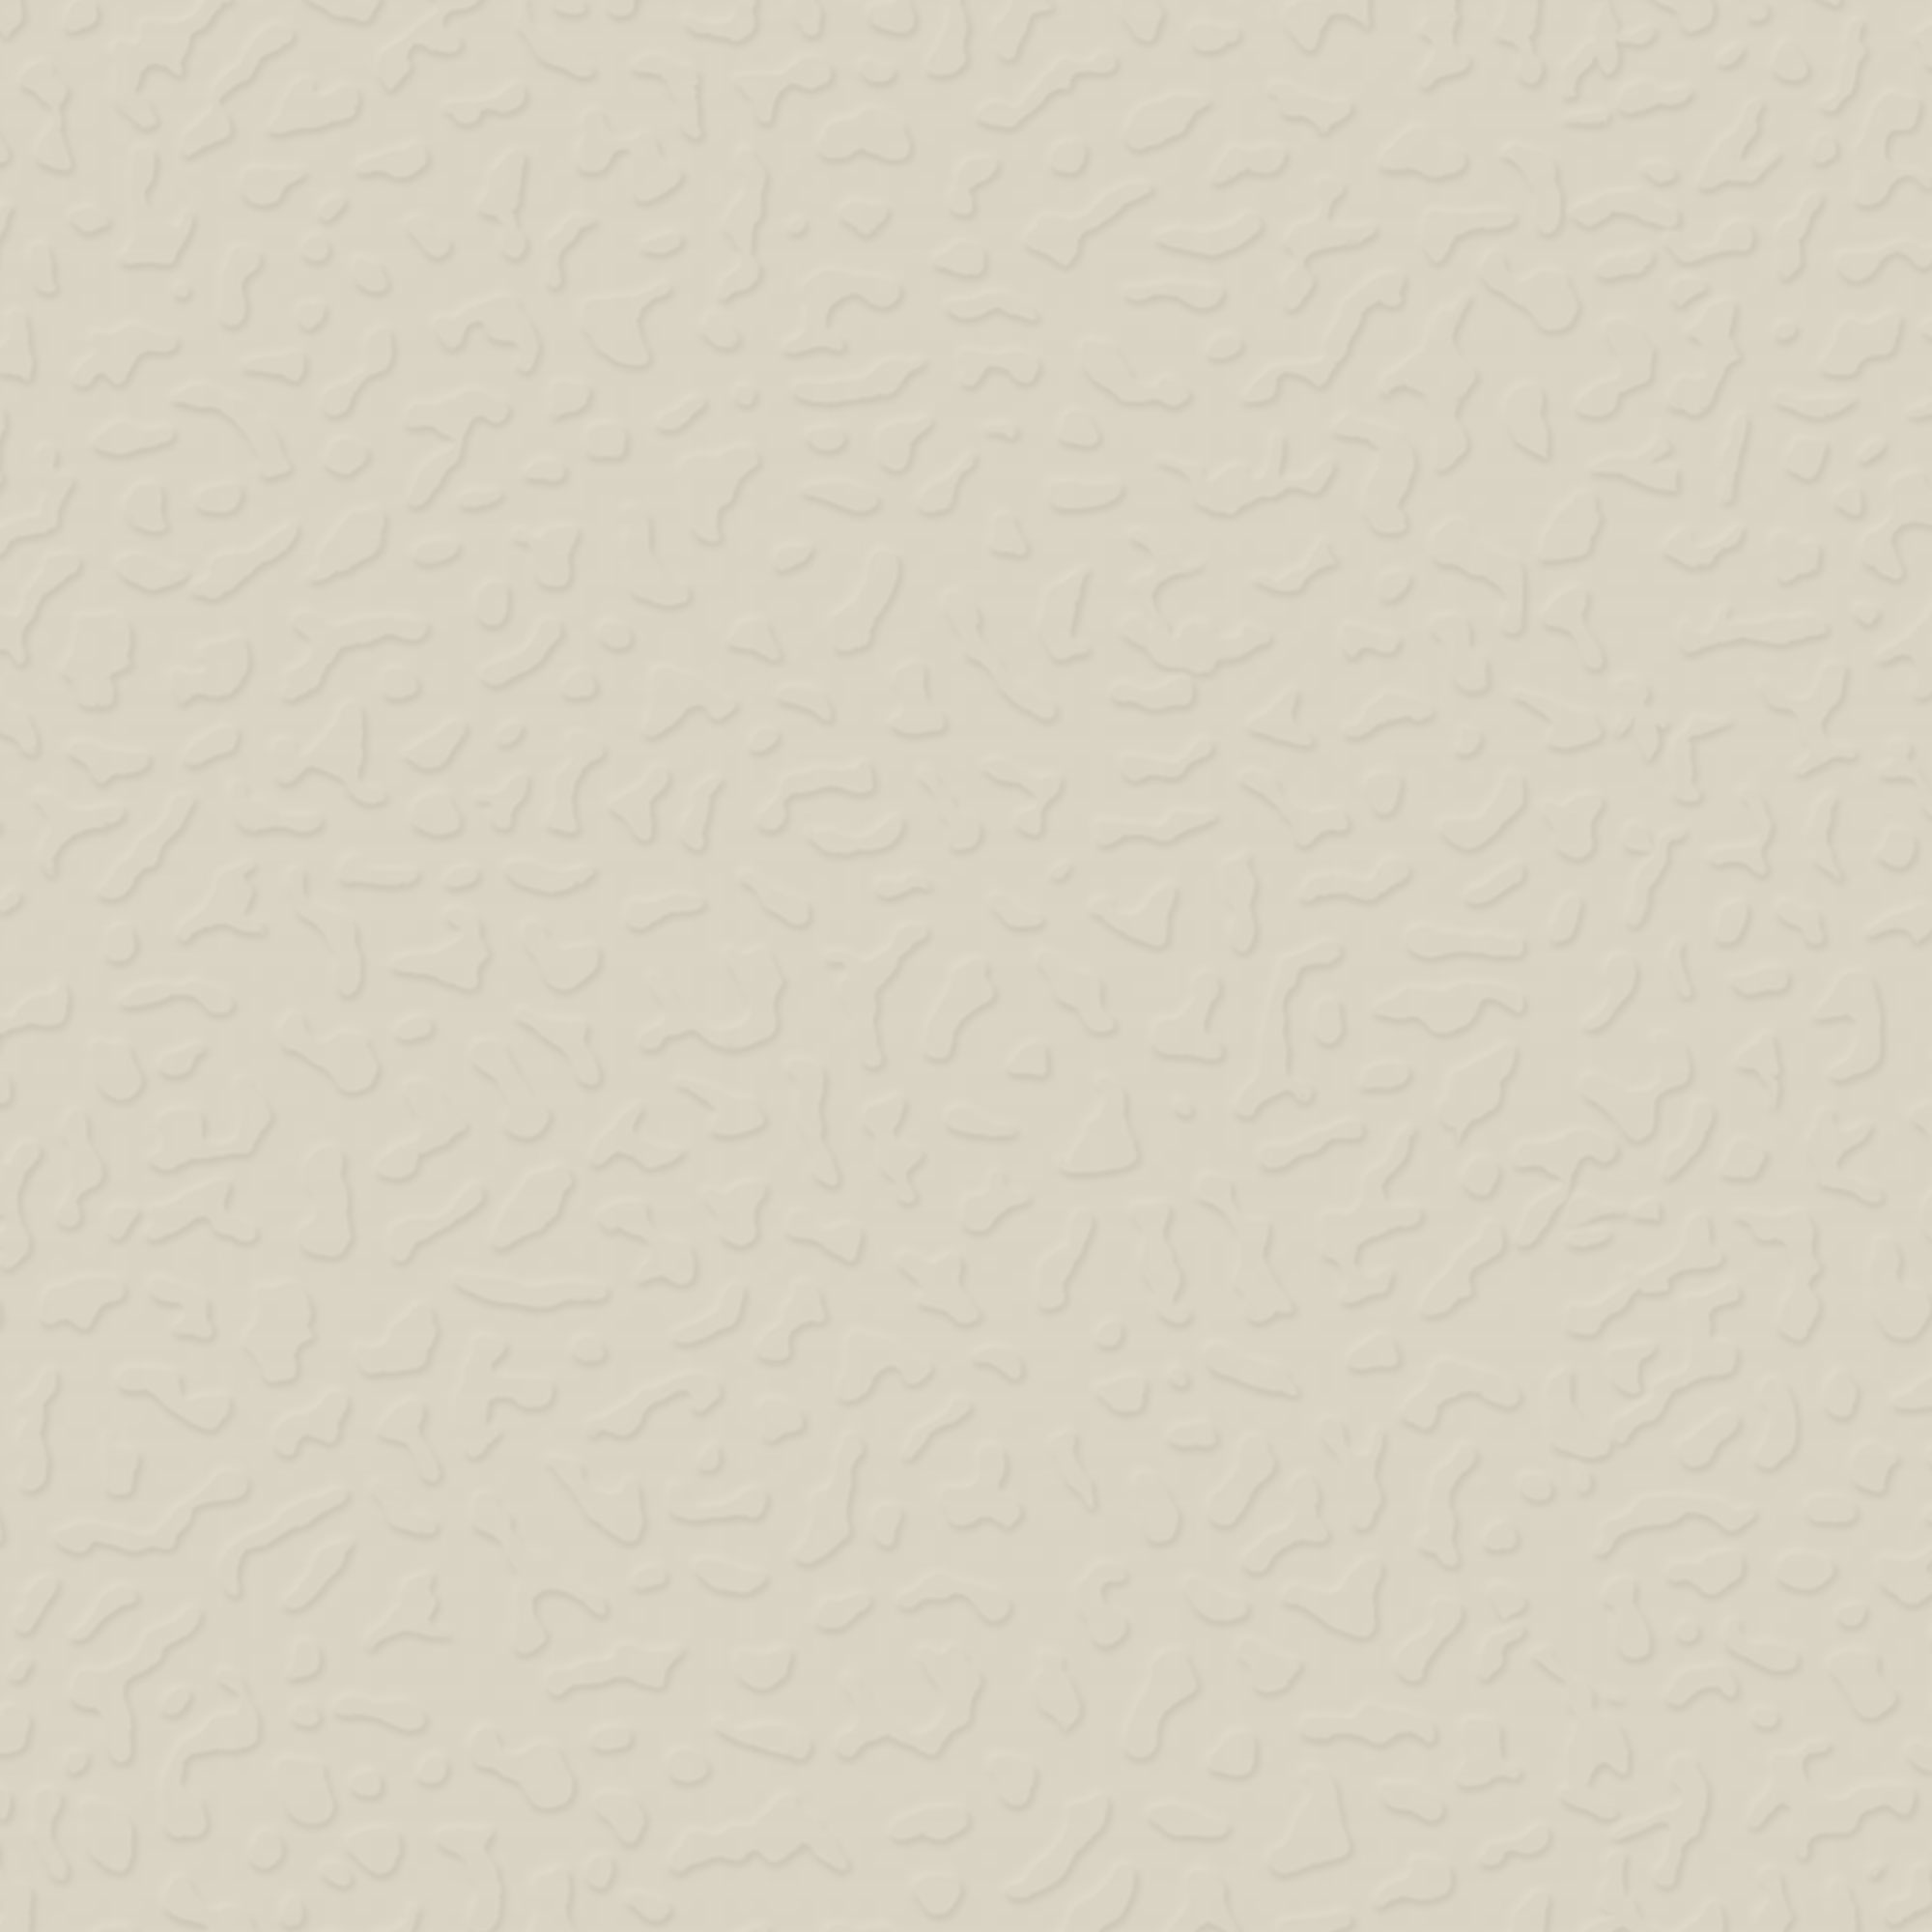 Roppe Rubber Tile 900 - Textured Design (993) White LB996170